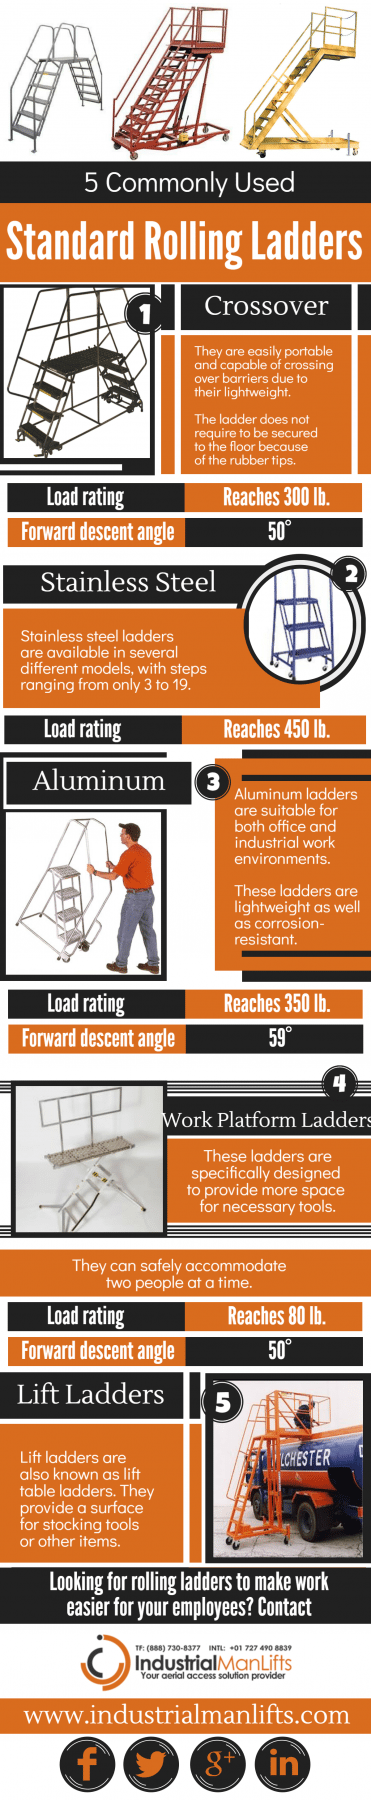 5 Commonly Used Standard Rolling Ladders - Infographic